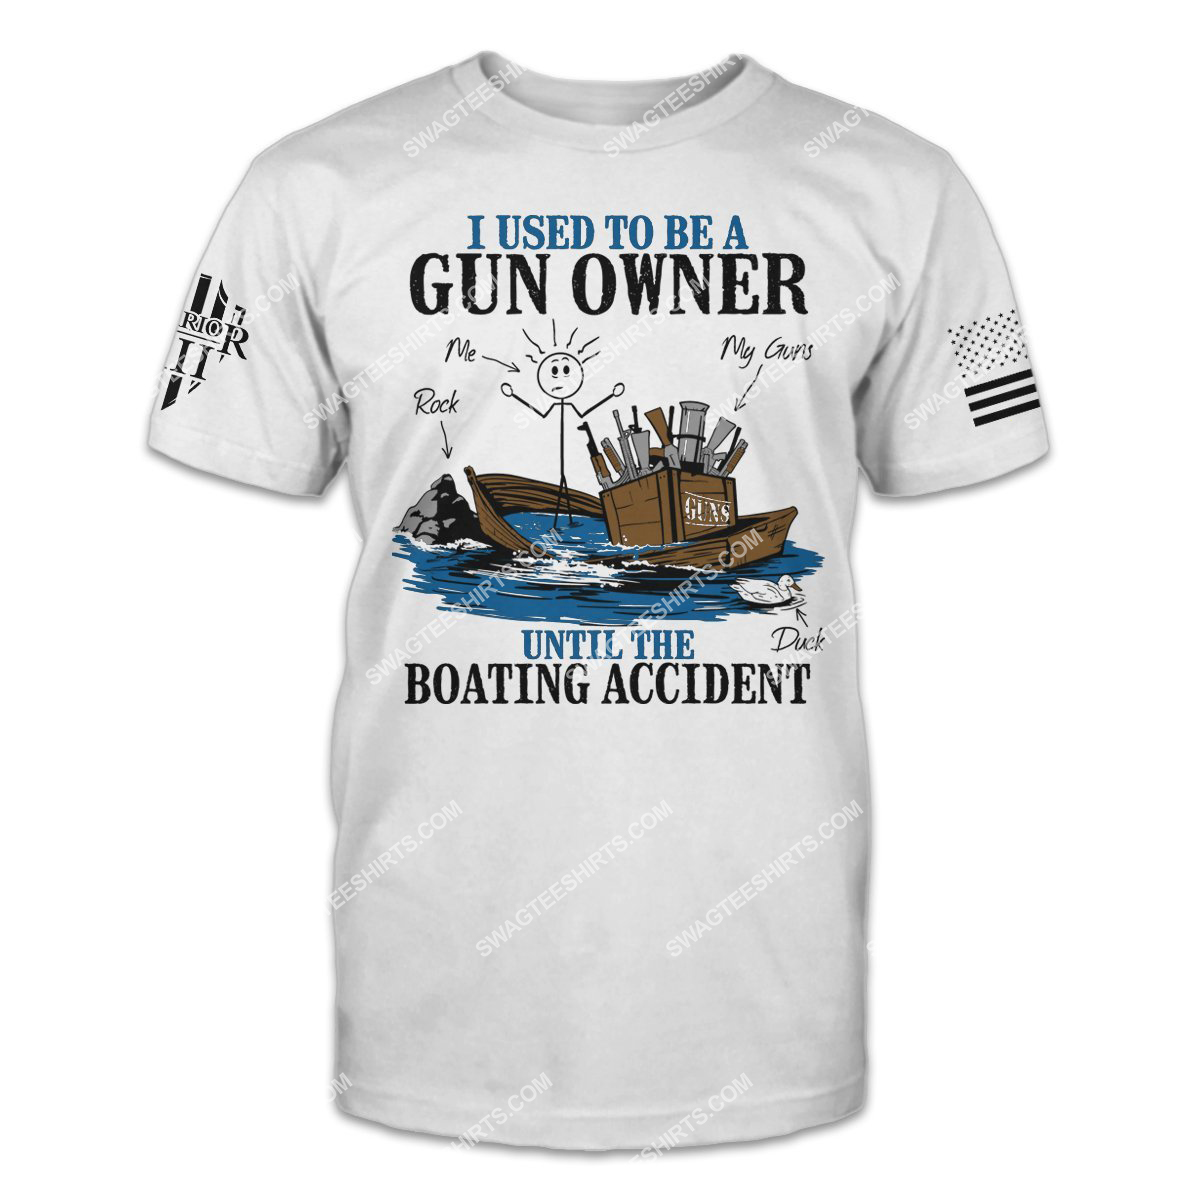 i used to be a gun owner until the boating accident politics shirt 1 - Copy